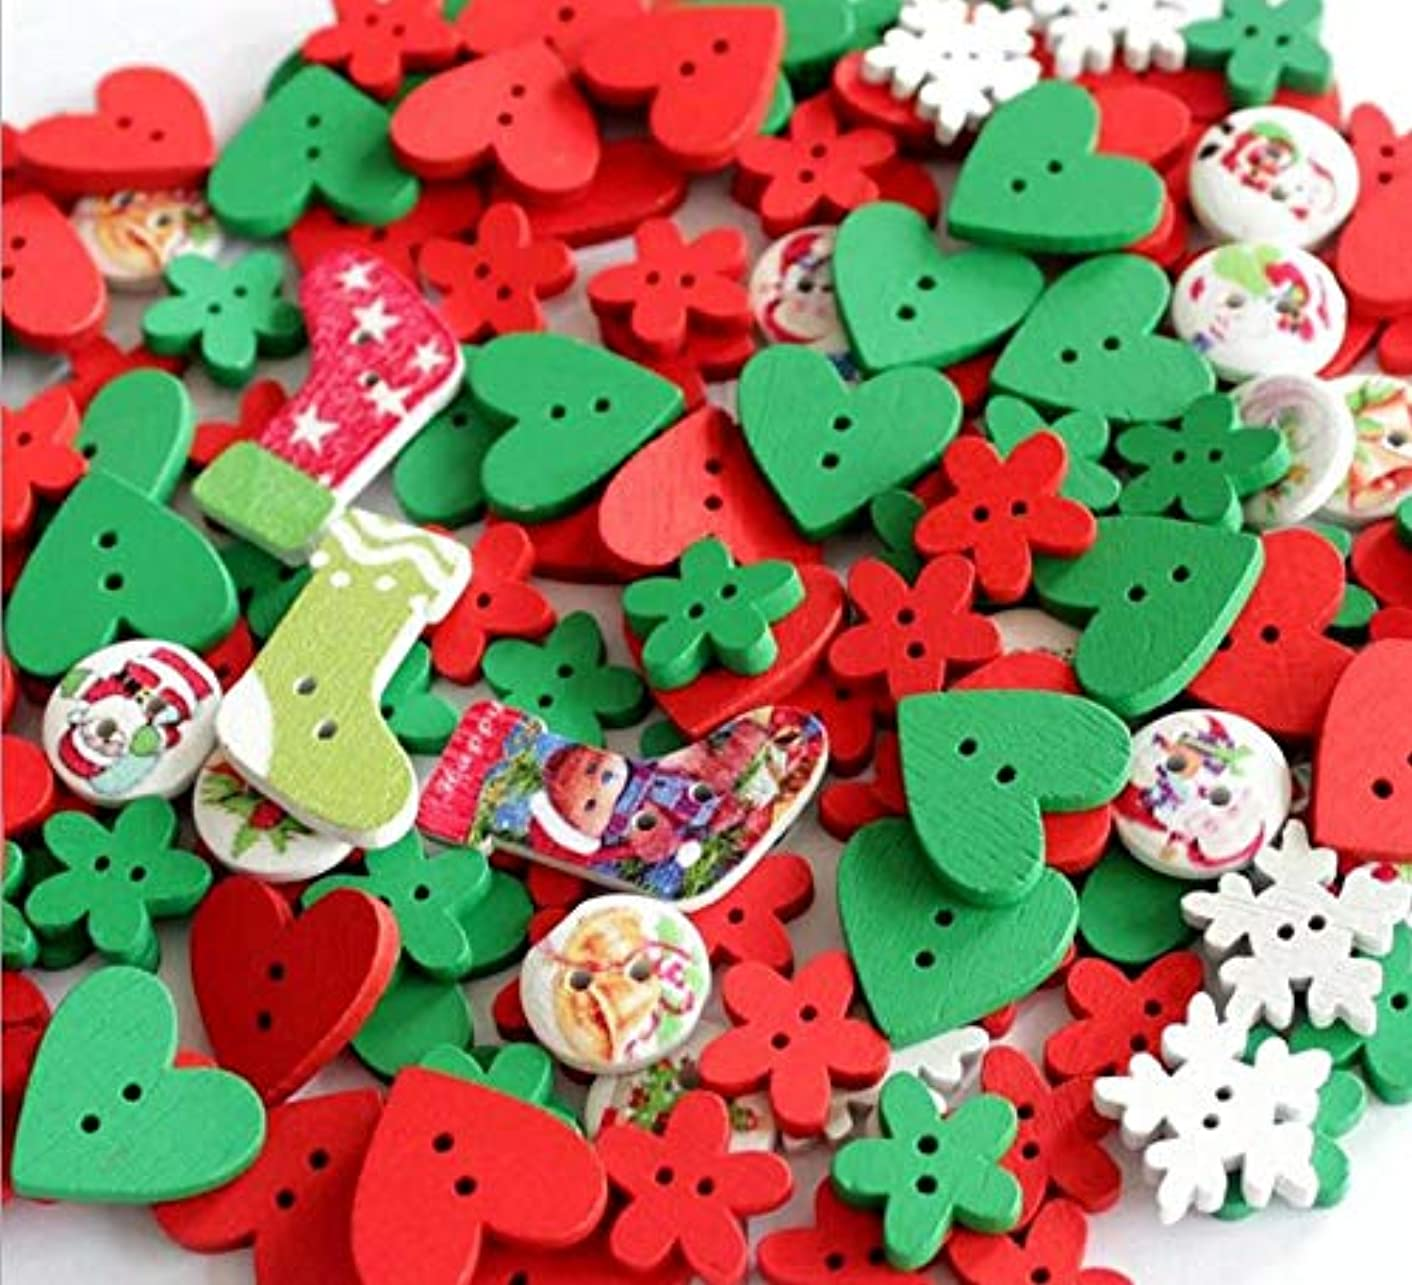 100pcs Green Red Wooden Sew Buttons Small Cute Wood Craft Buttons Assorted Design Buttons 2 Hole Bulk Buttons Compatible DIY Scrapbooking Craft Decoration,Mixed Size and Style (Christmas Red&Green)